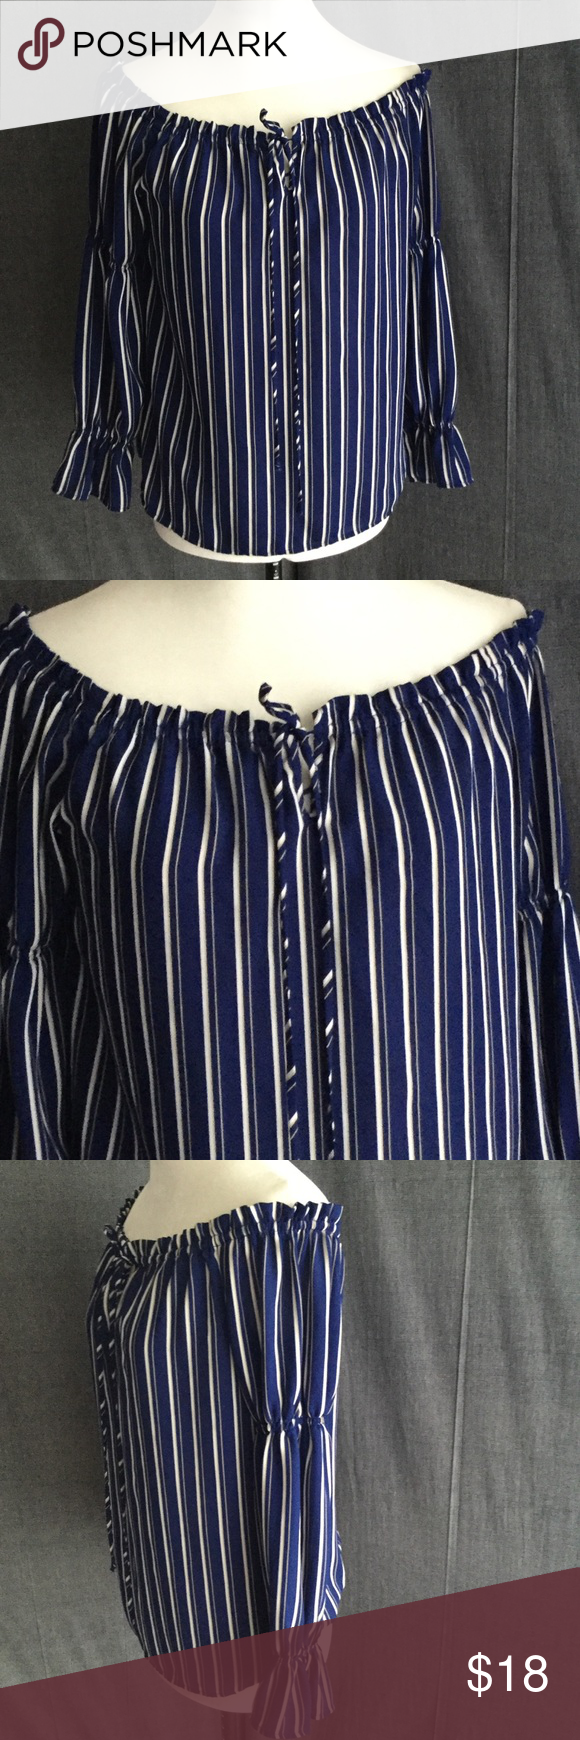 WAYF Indigo Blue & White Off Shoulder Top sz XS Great off should top by WAYF. Gorgeous shade of indigo blue with white and light tan vertical stripes, gathered top with pull string closure. Gently loved but looks brand new and never worn.  Size XS See photos for material and care instructions.   OAK.0137 Wayf Tops Blouses